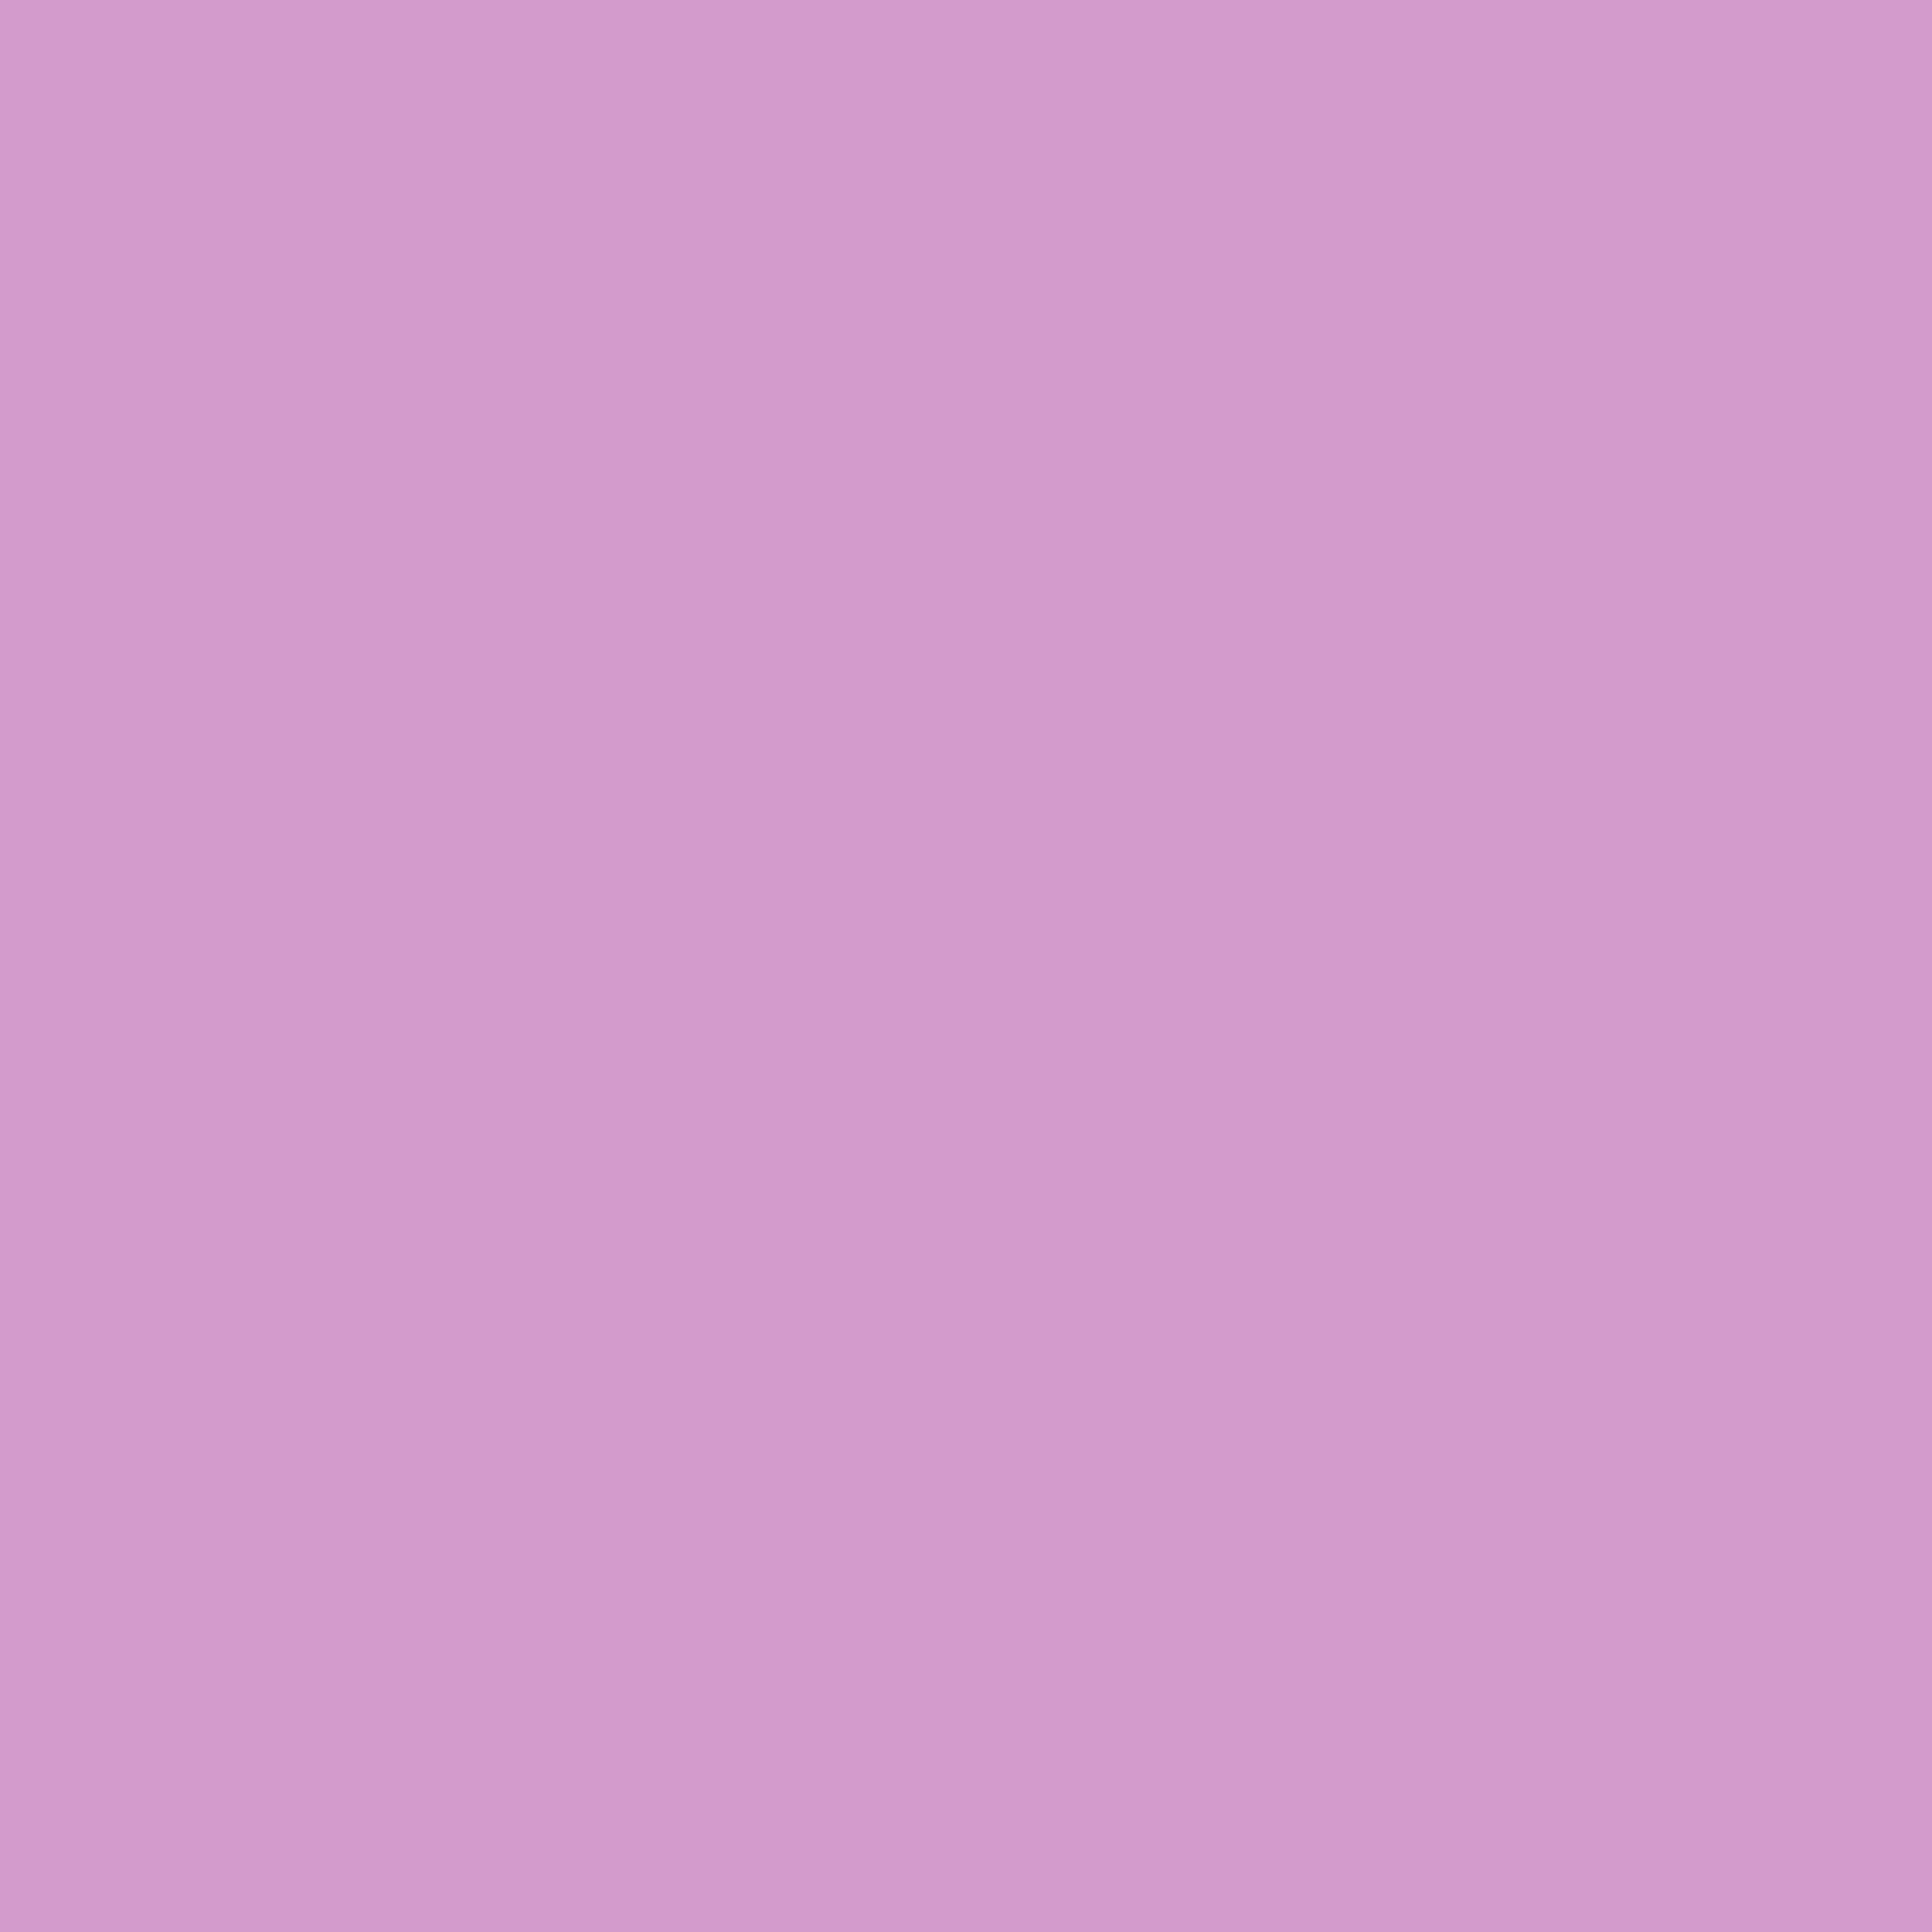 2732x2732 Light Medium Orchid Solid Color Background